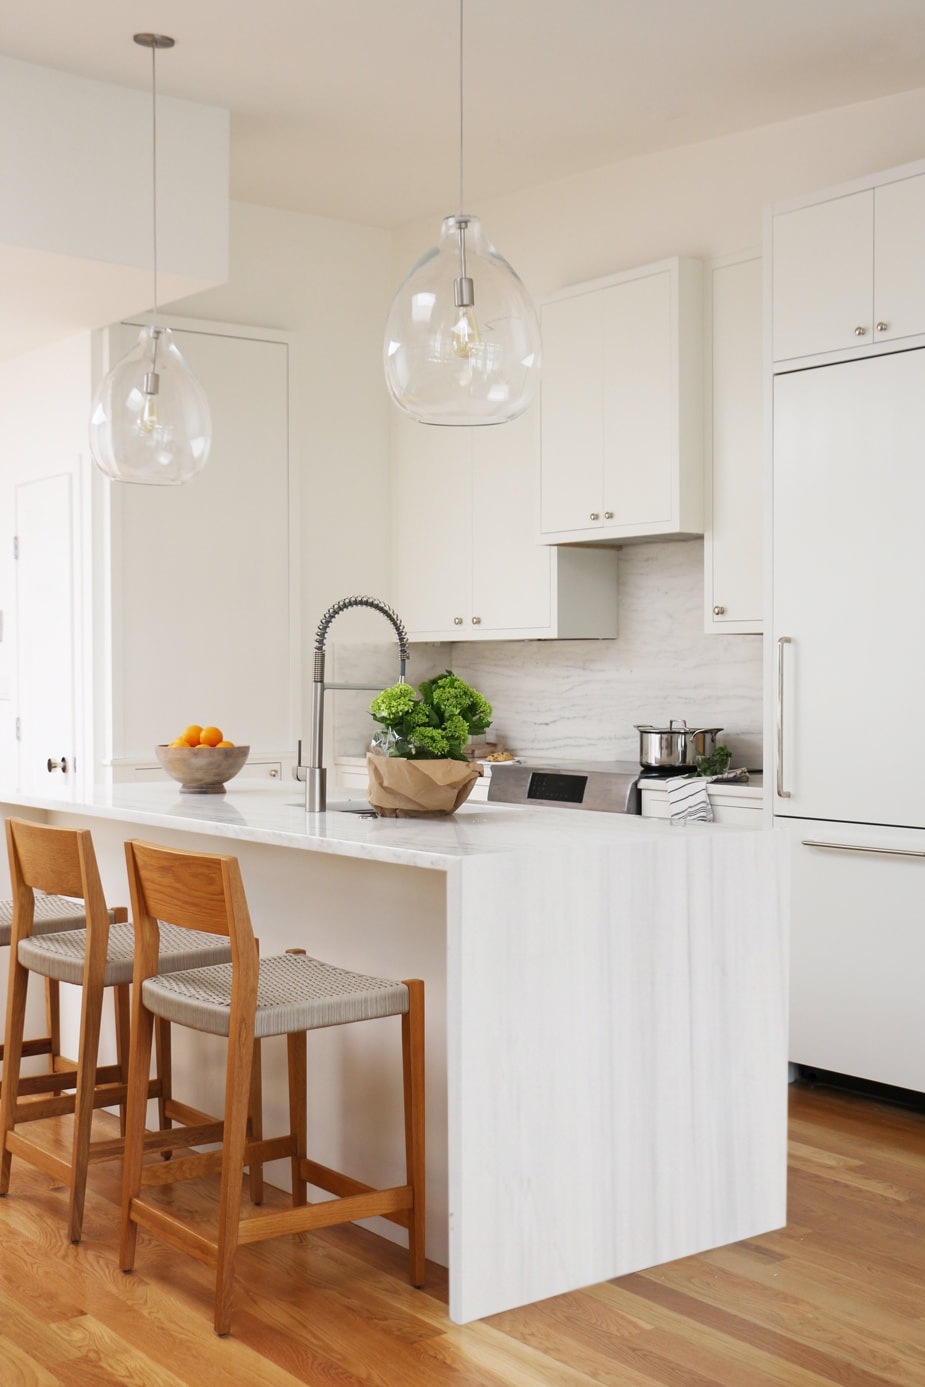 A CALI VIBESKITCHEN REMODEL - Andrea and Chris purchased a condo that was in need of a renovation including completely opening up the kitchen!